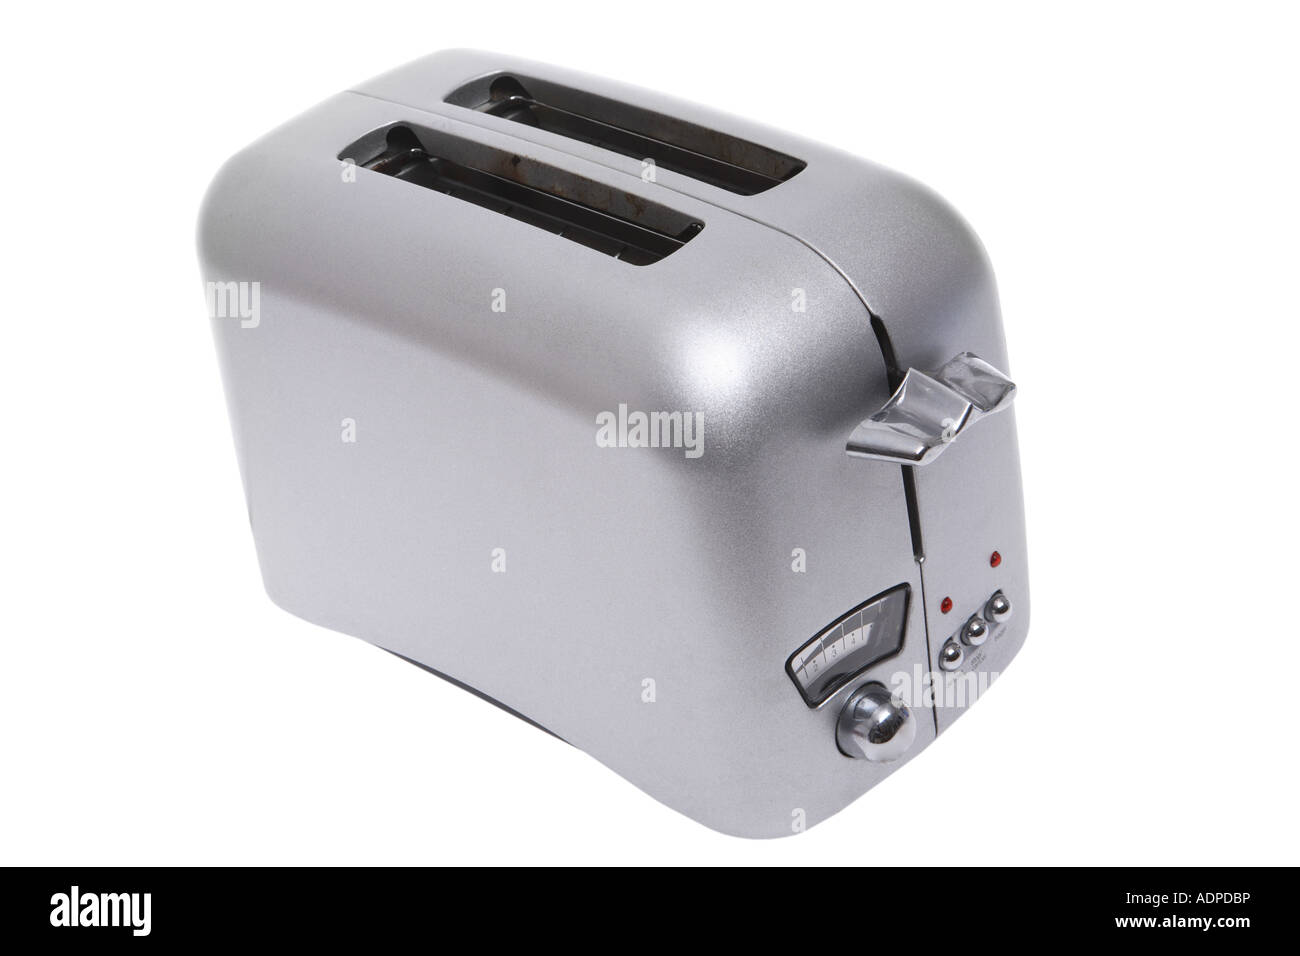 Toaster cut out on white background - Stock Image